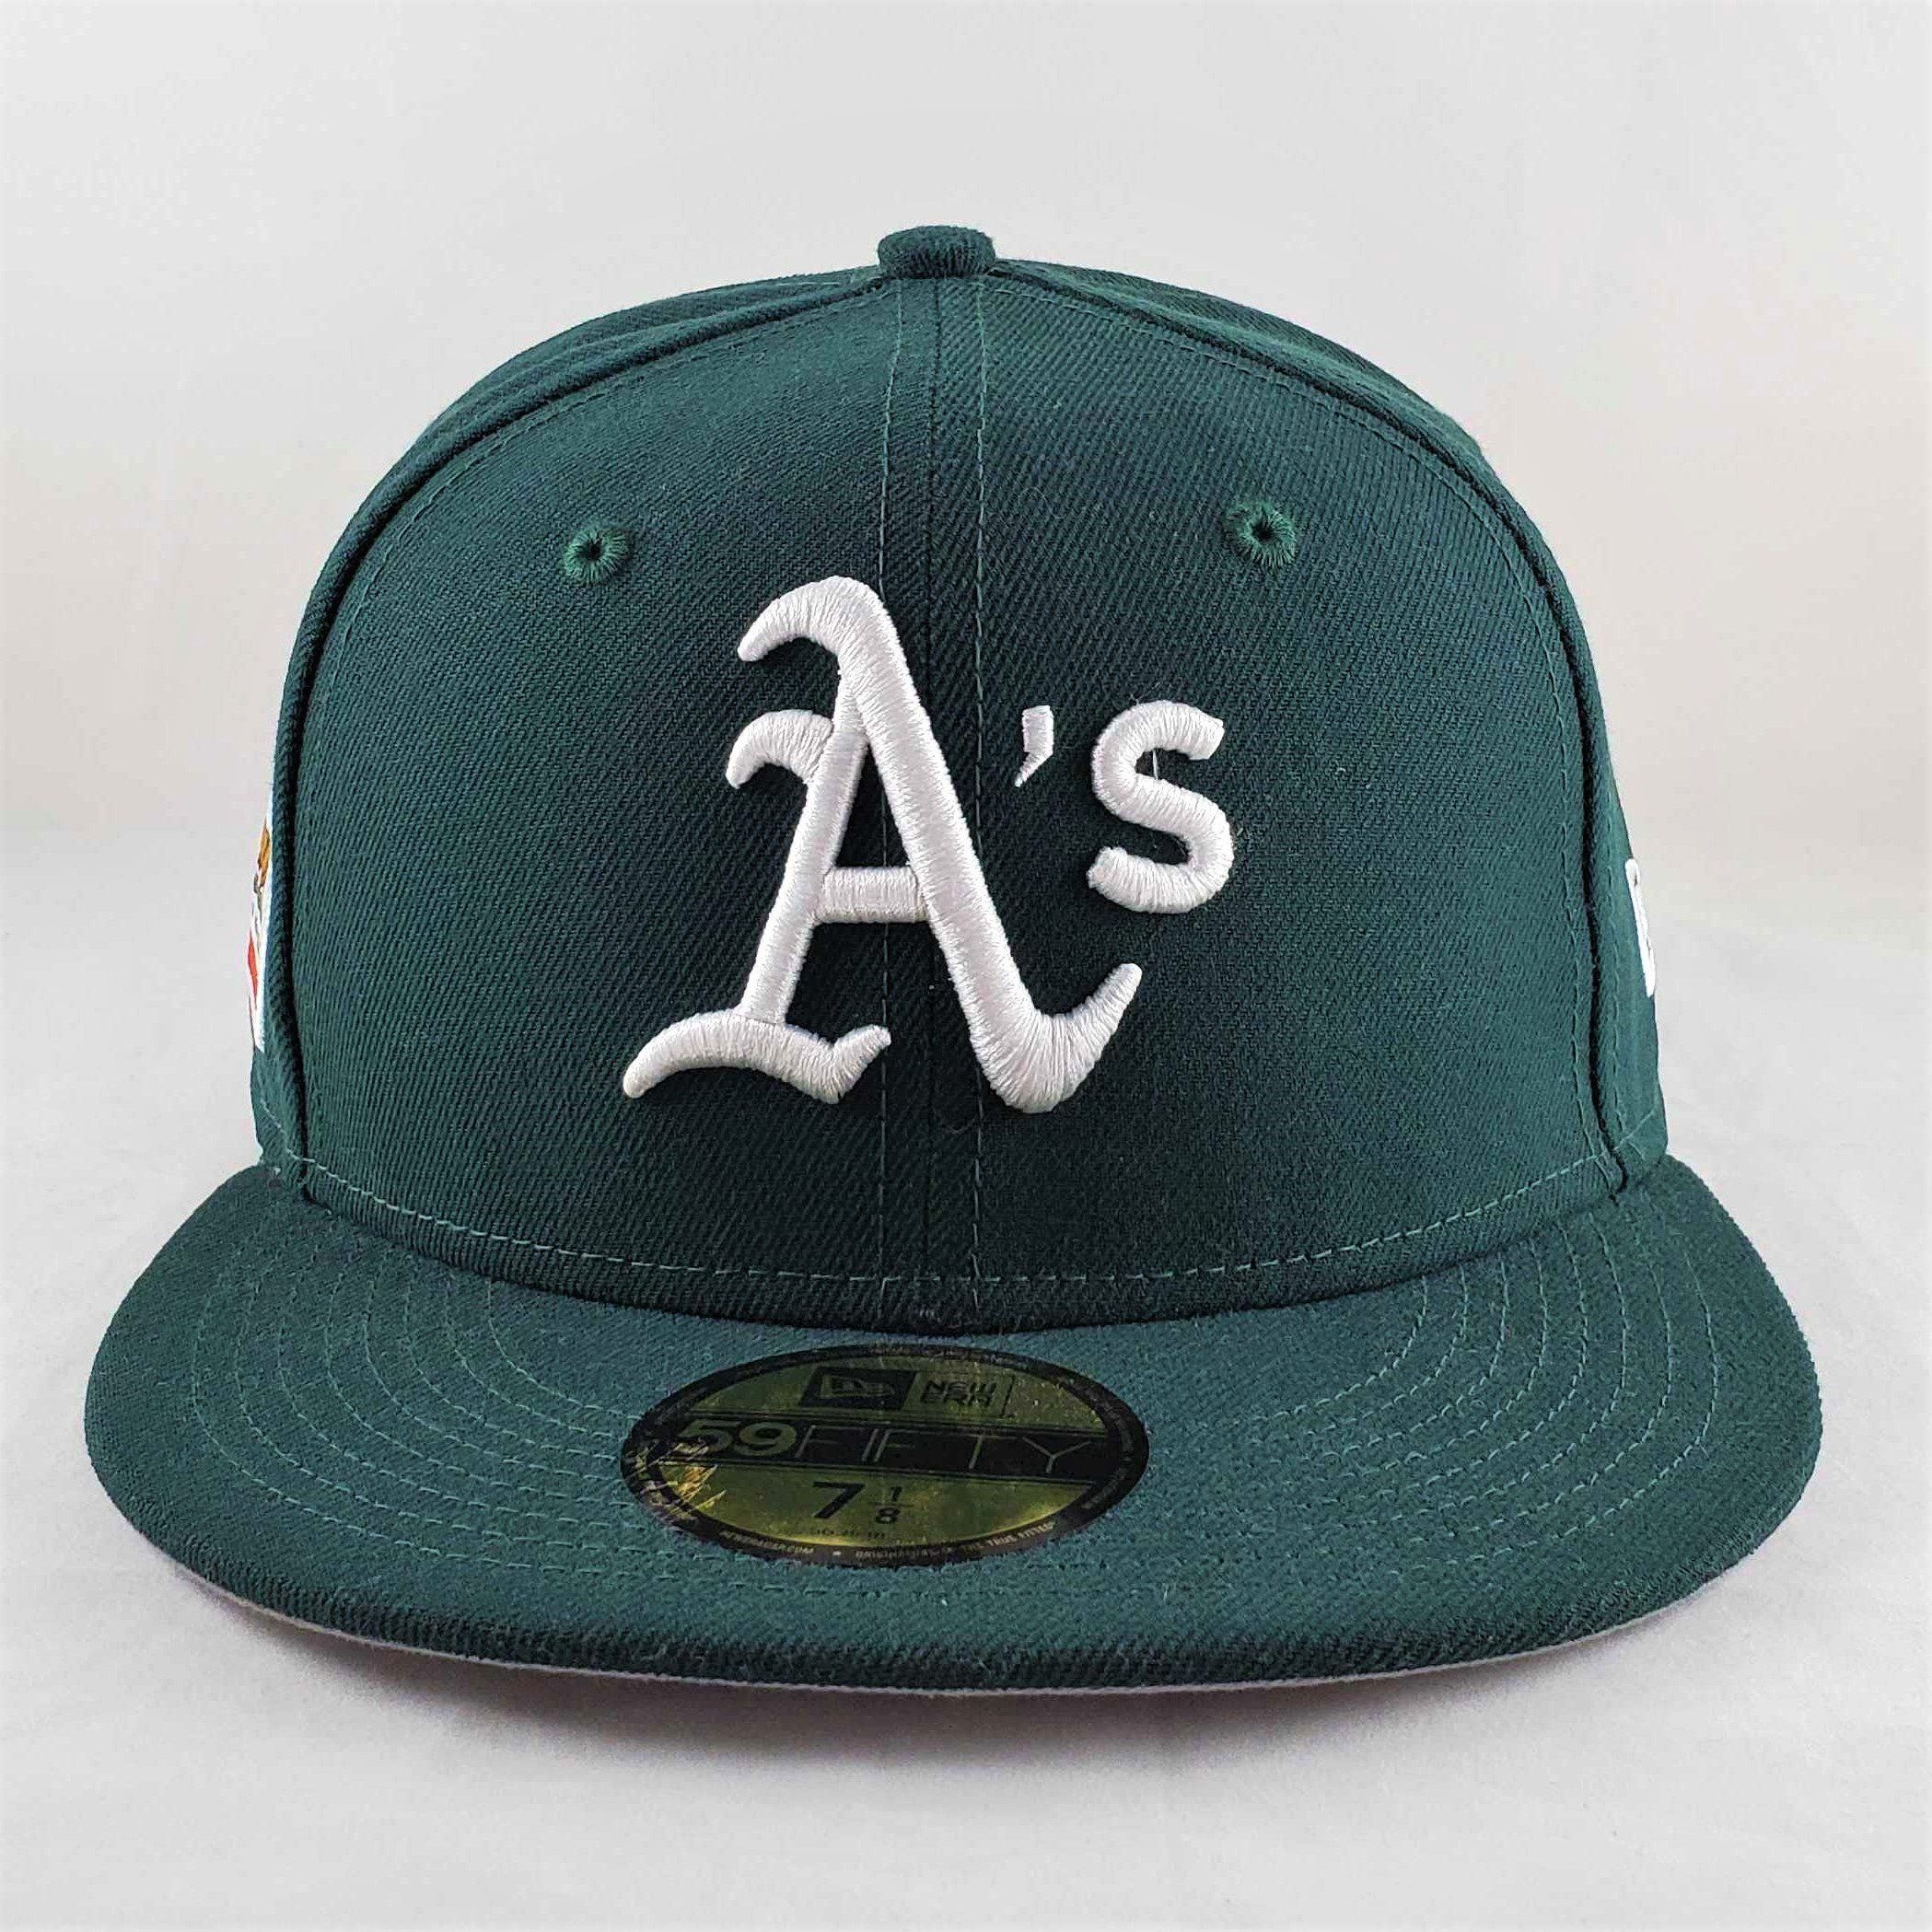 City Flag Oakland A's Fitted Cap in 2020 City flags, New